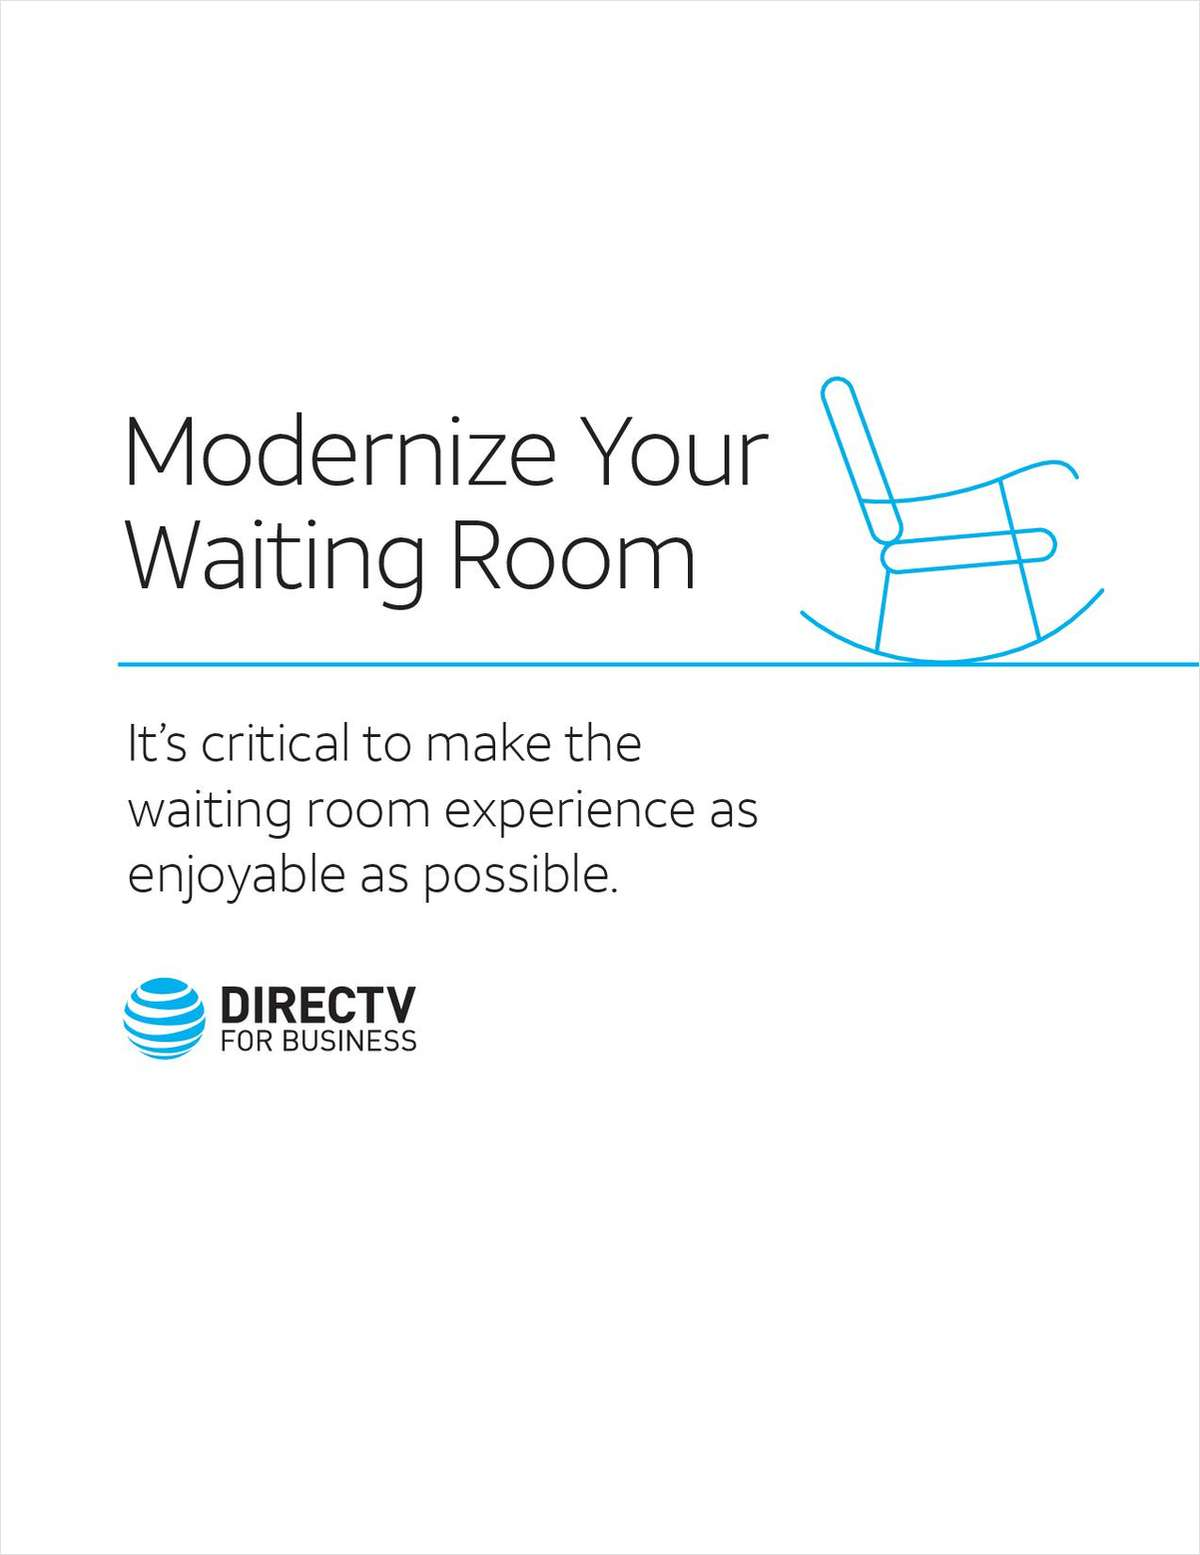 Modernize Your Waiting Room